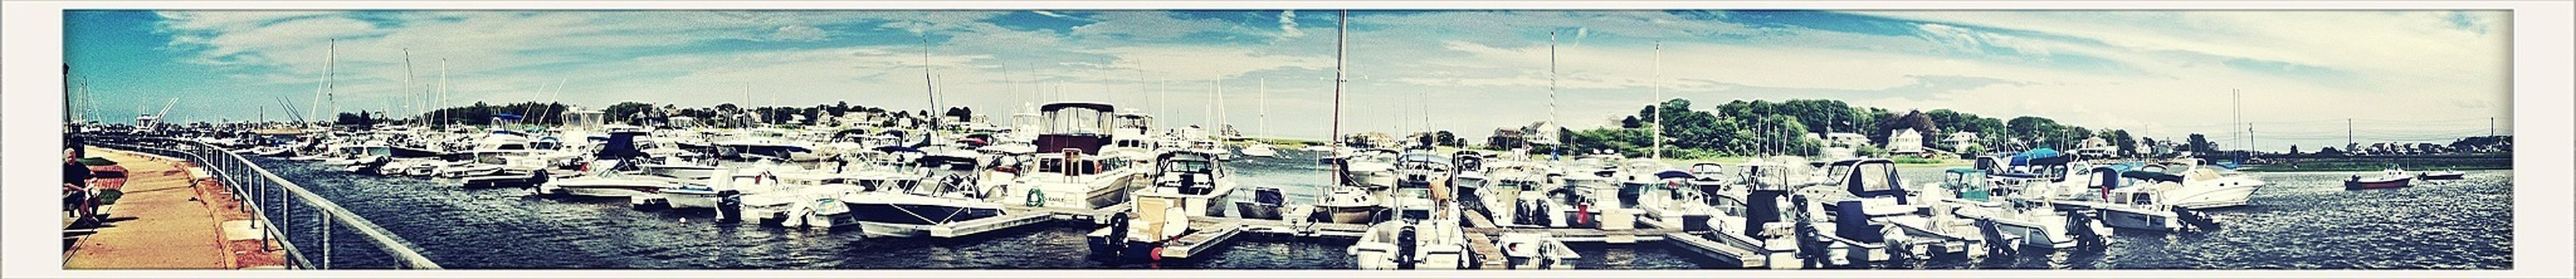 harbor long view Ocean View Eye4photography  Streetphotography AMPt_community